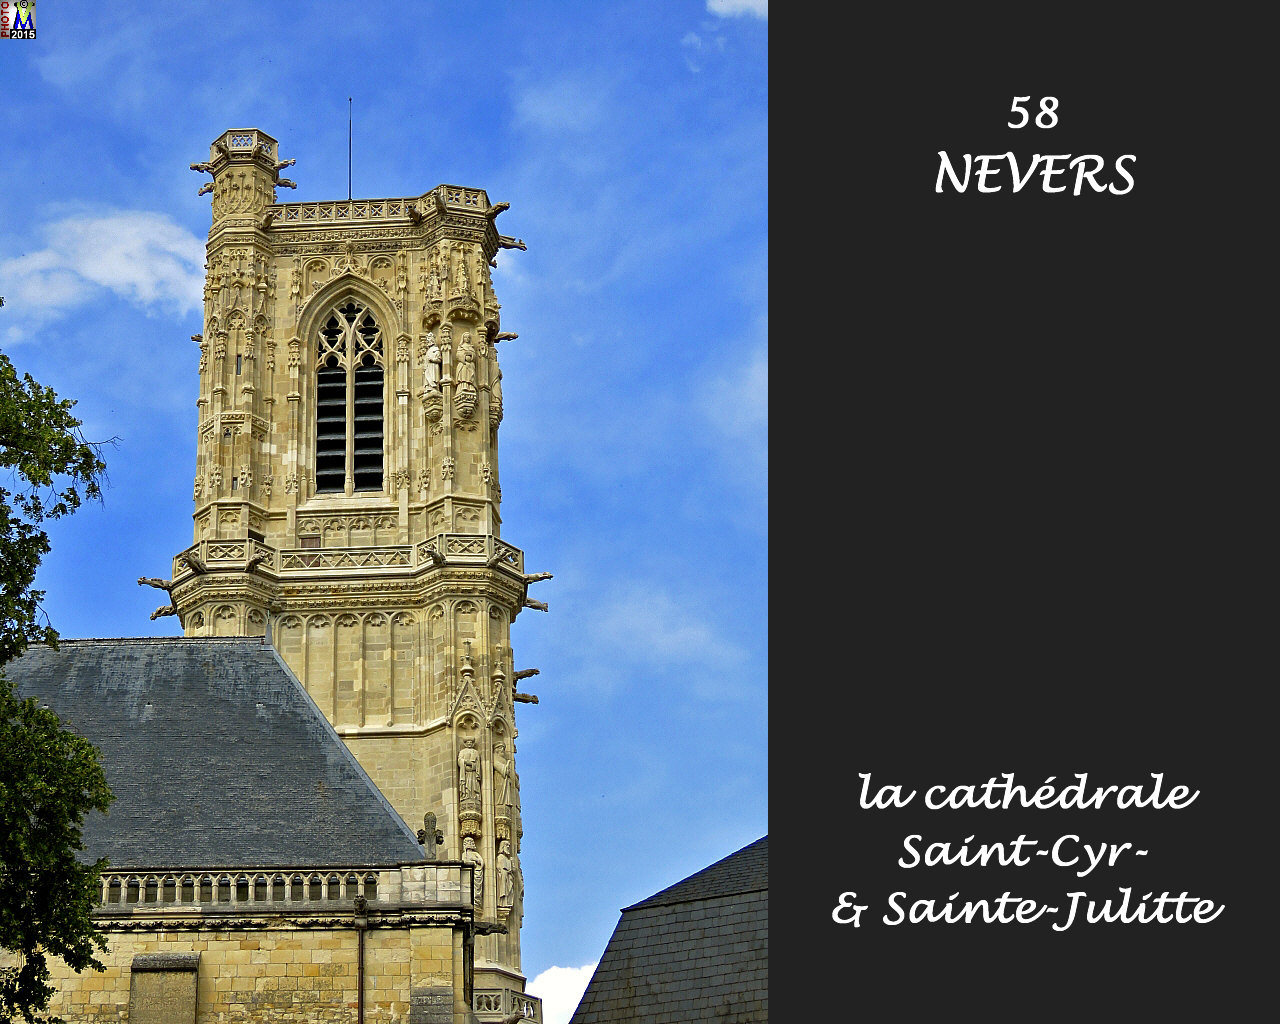 58NEVERS-cathedrale_116.jpg